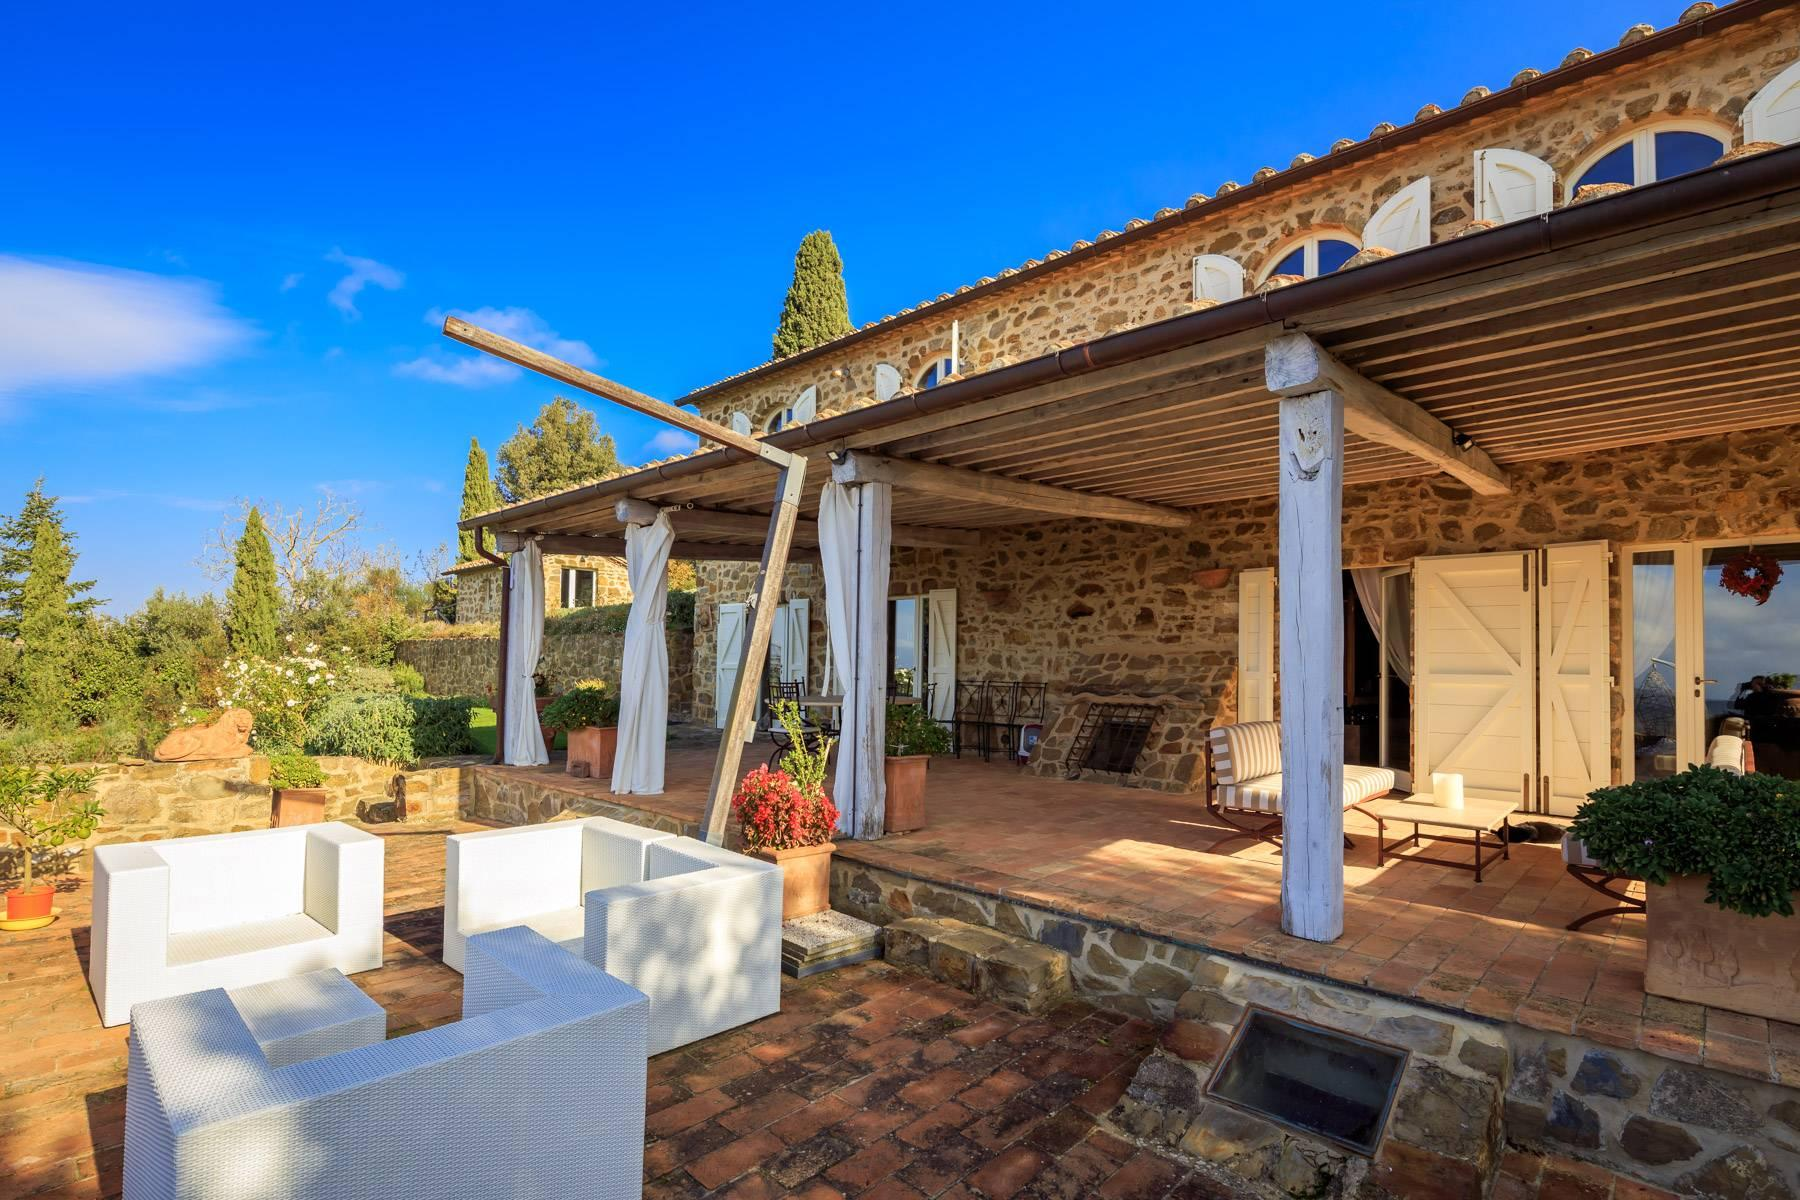 Marvelous newly restored farmhouse close to Montalcino - 24